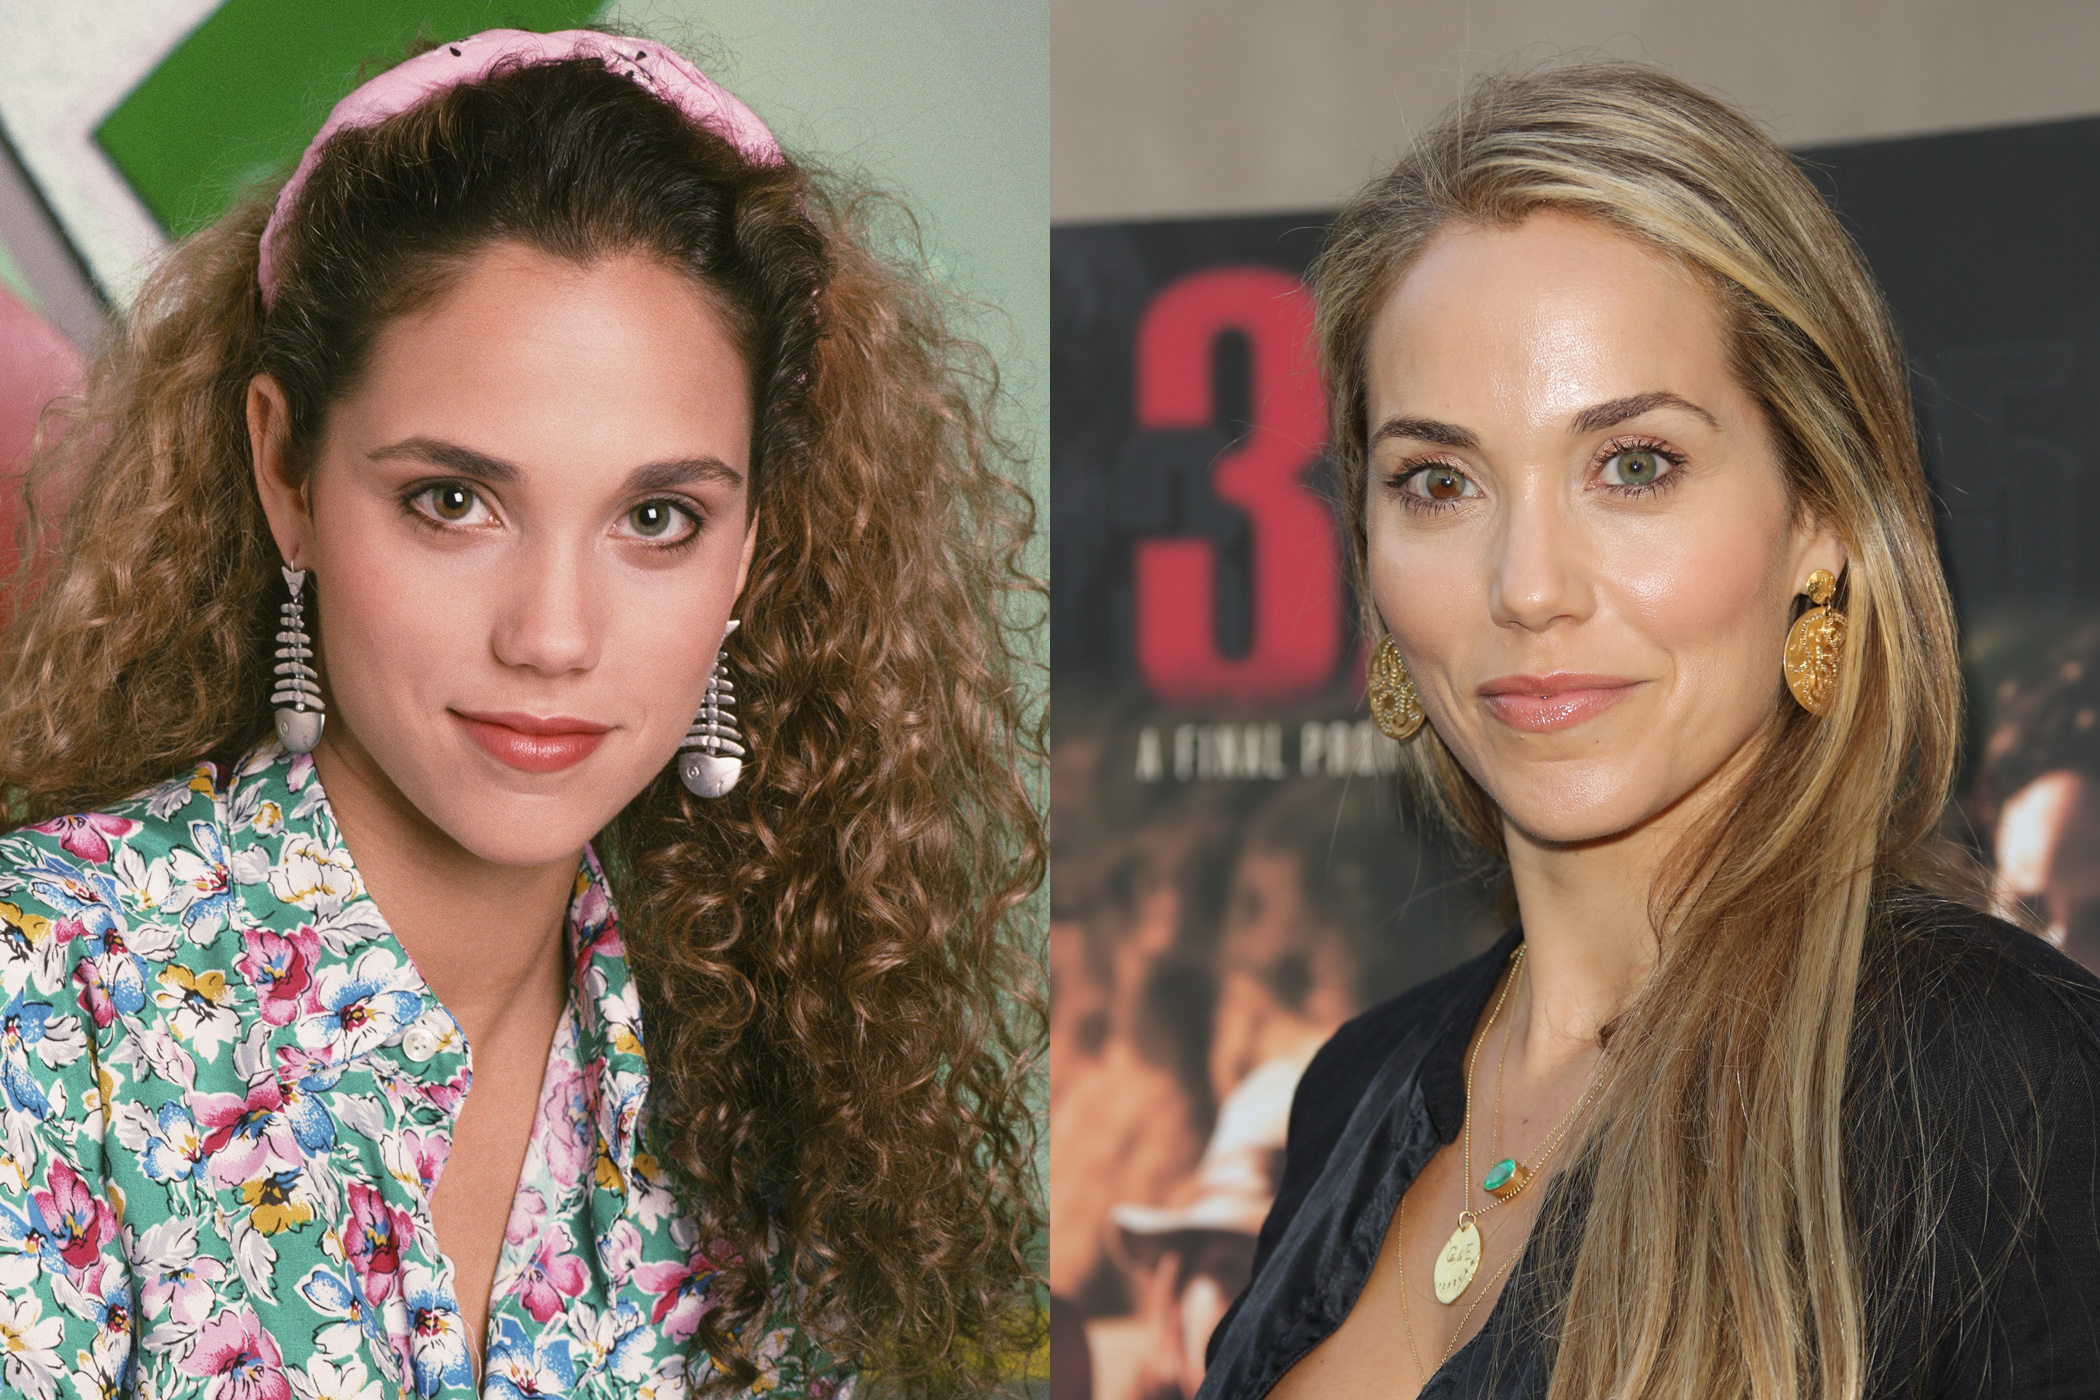 """Elizabeth Berkley, Jessie Spano: While the actress has had a smattering of roles, her most notable post-<i>Bell</i>part was as an exotic dancer in <i>Showgirls</i>. We'll still always remember her for Jessie's classic """"I'm so excited"""" freakout on caffeine pills."""